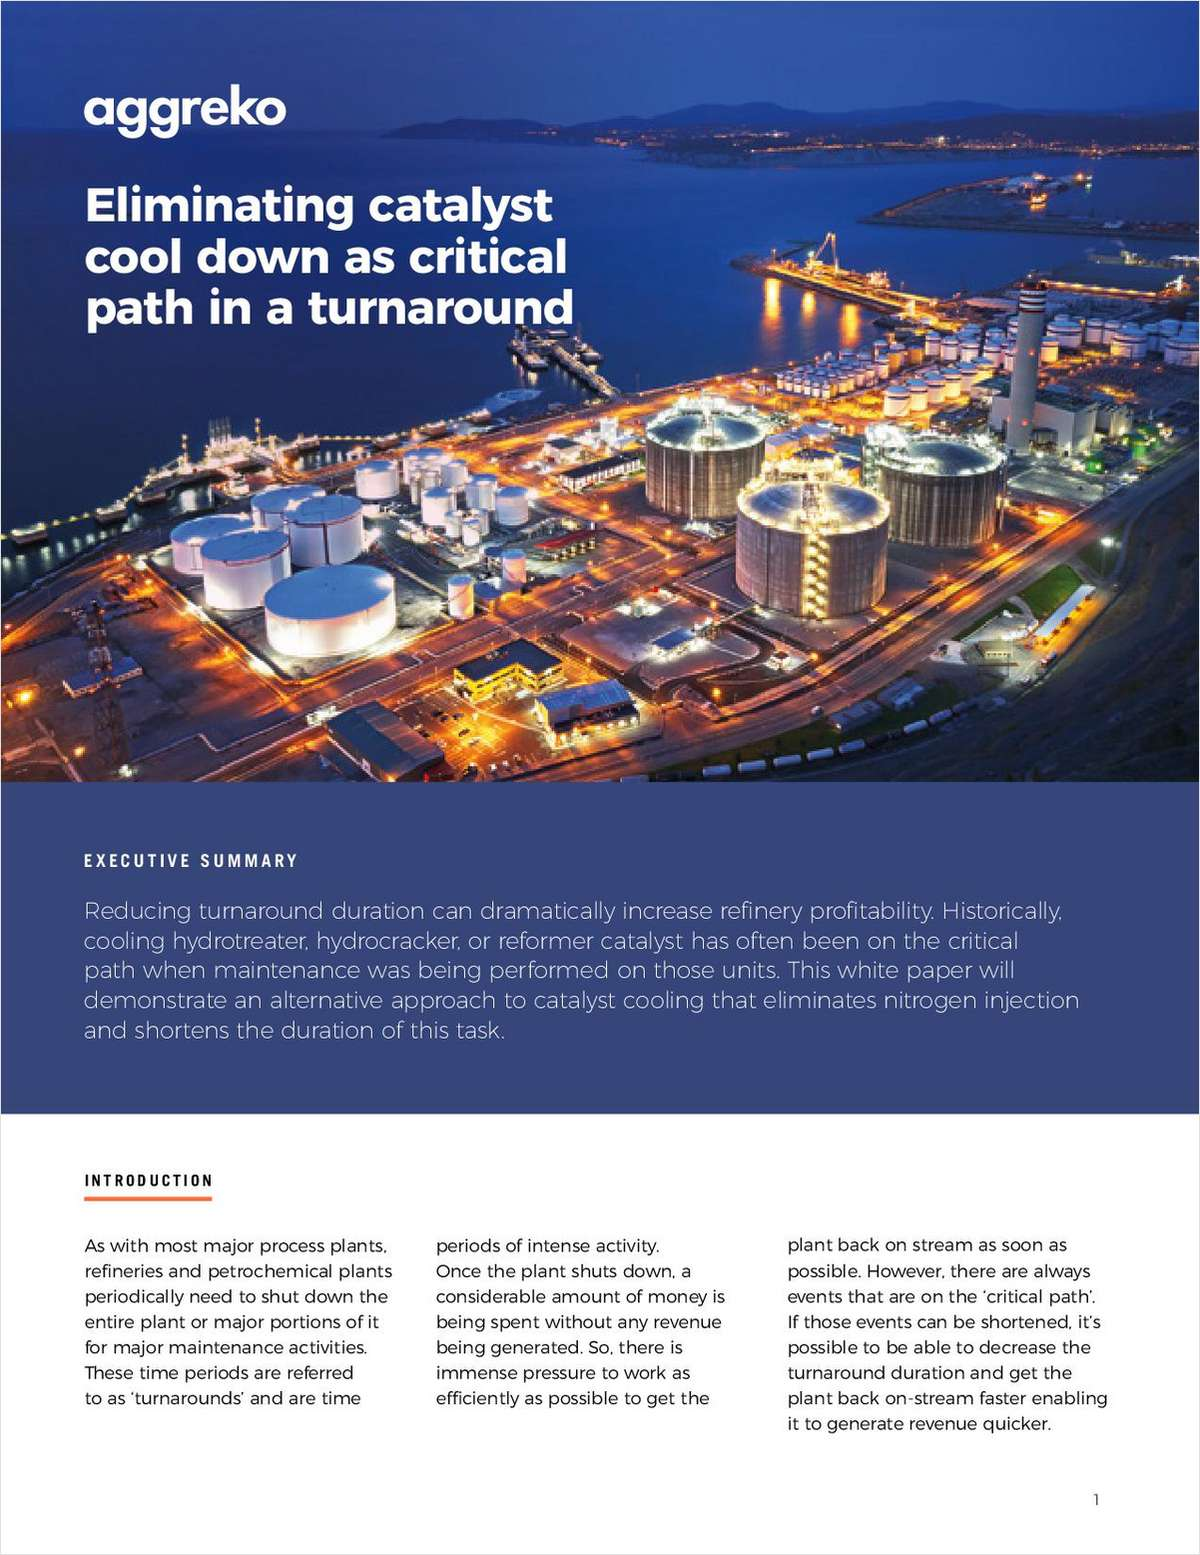 Eliminating Catalyst Cool Down as Critical Path in a Turnaround